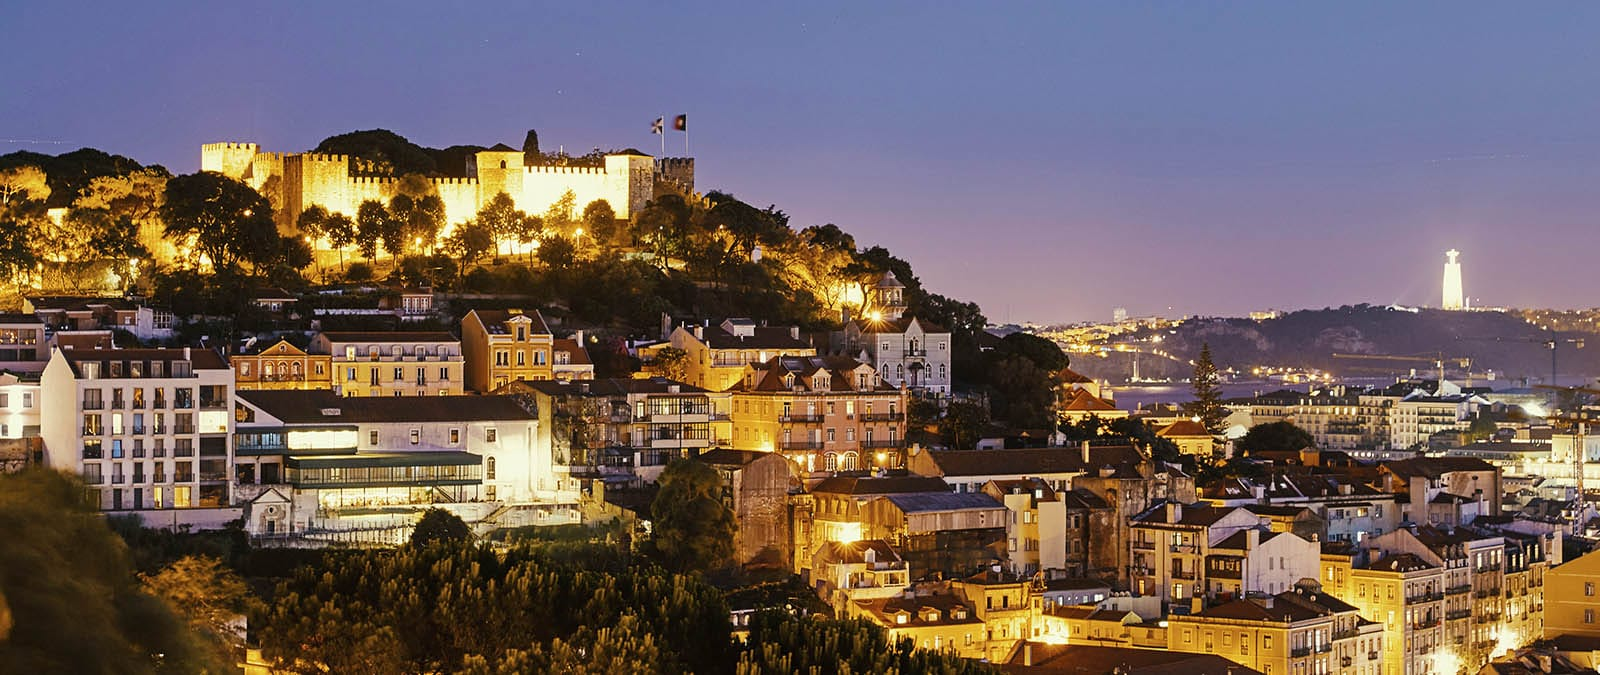 Portugal Golden Visa Program is very famous among investors who want to secure EU residency.